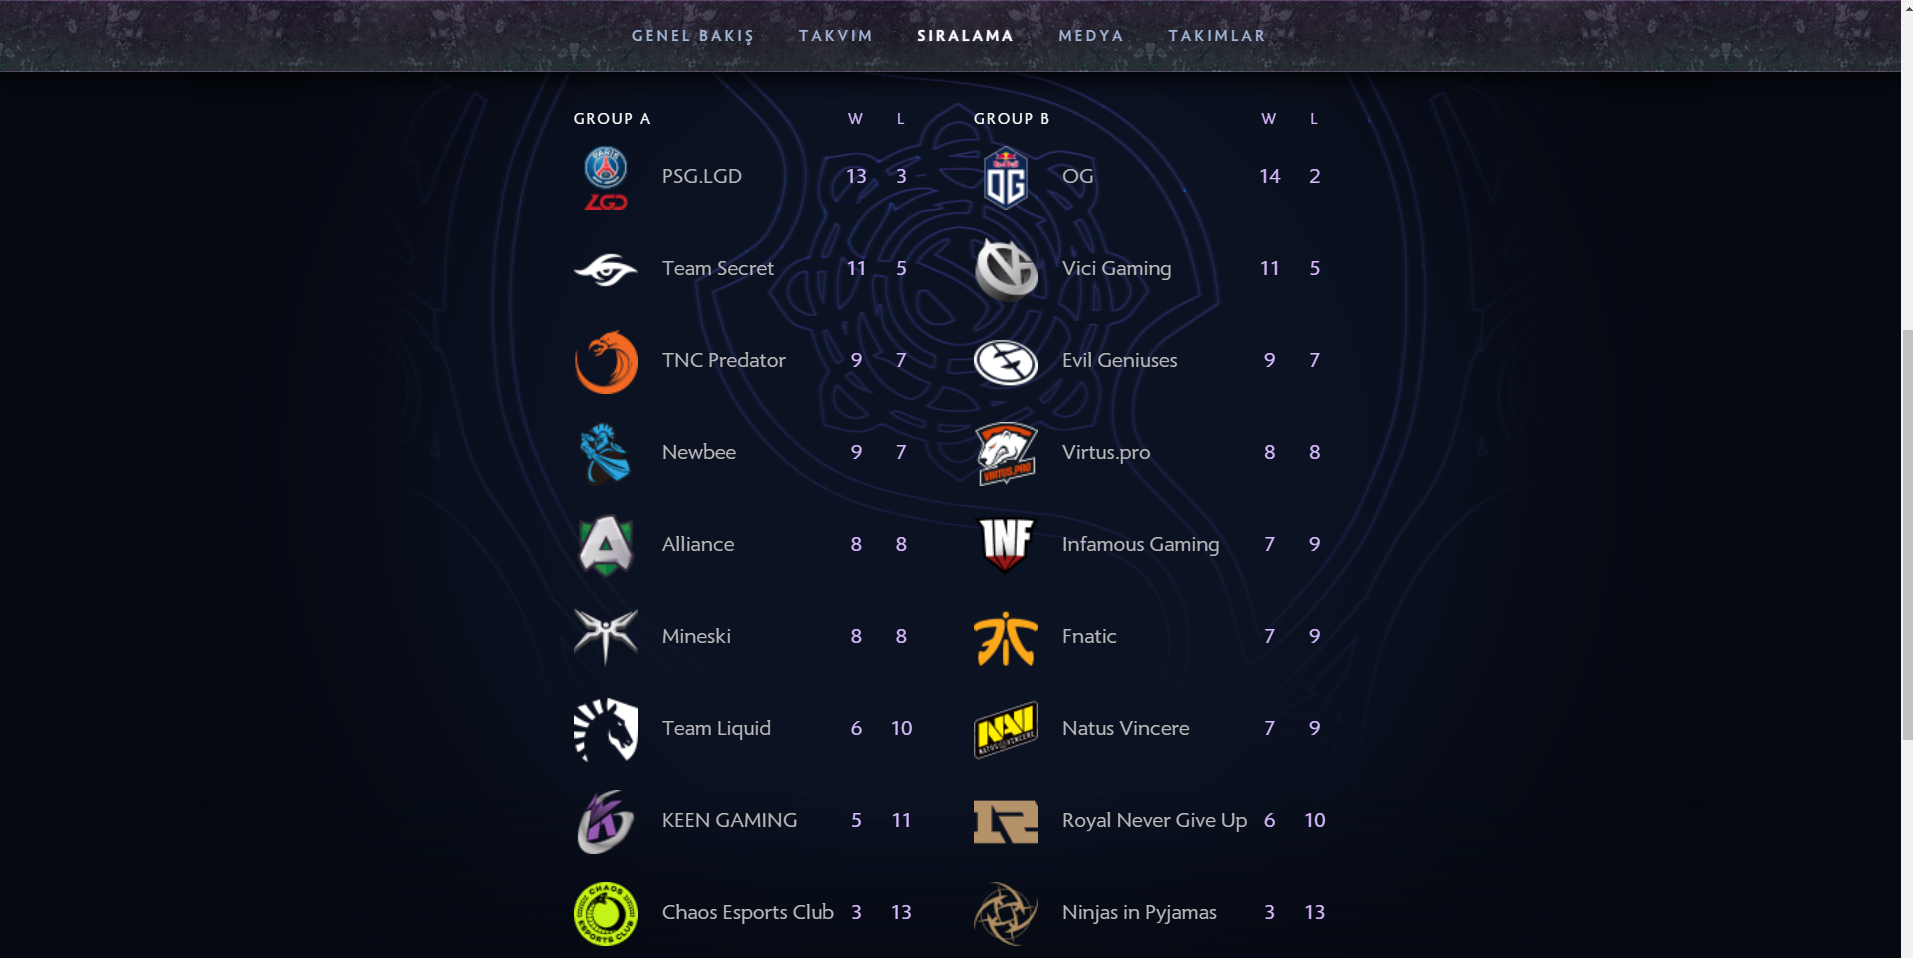 dota 2_the_international_2019groups.png